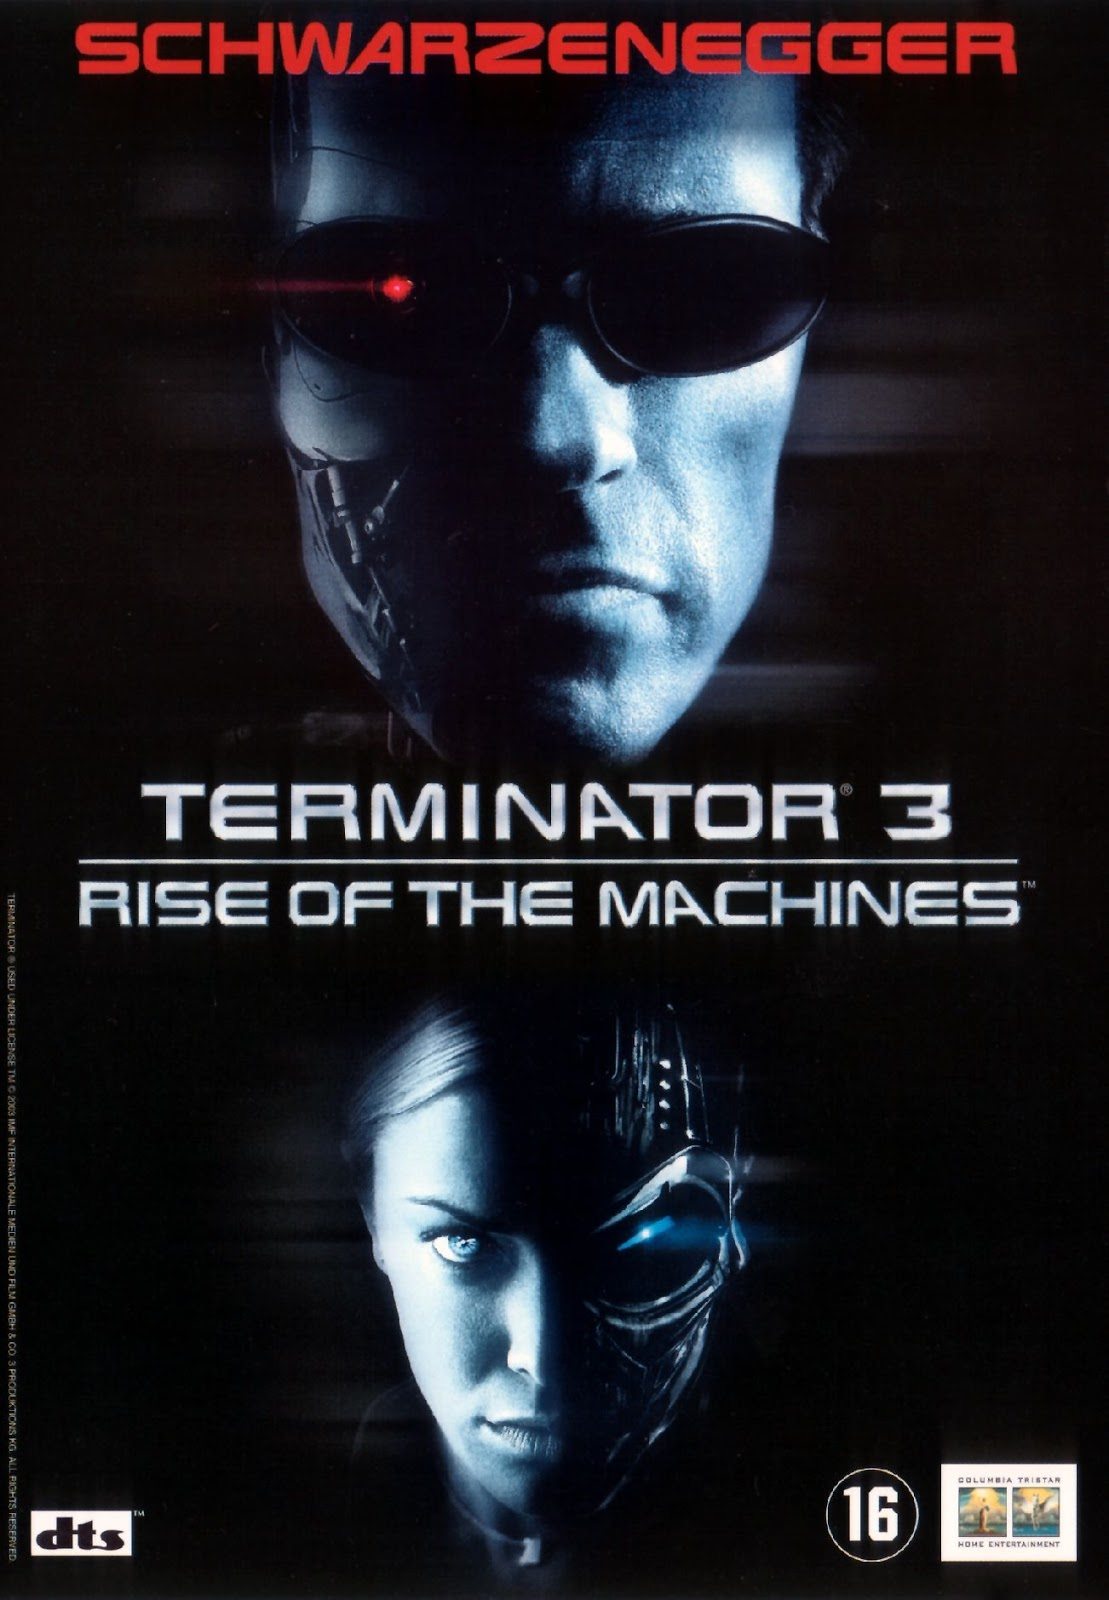 Terminator 3: Rise of the Machines 2003 - Full (HD)